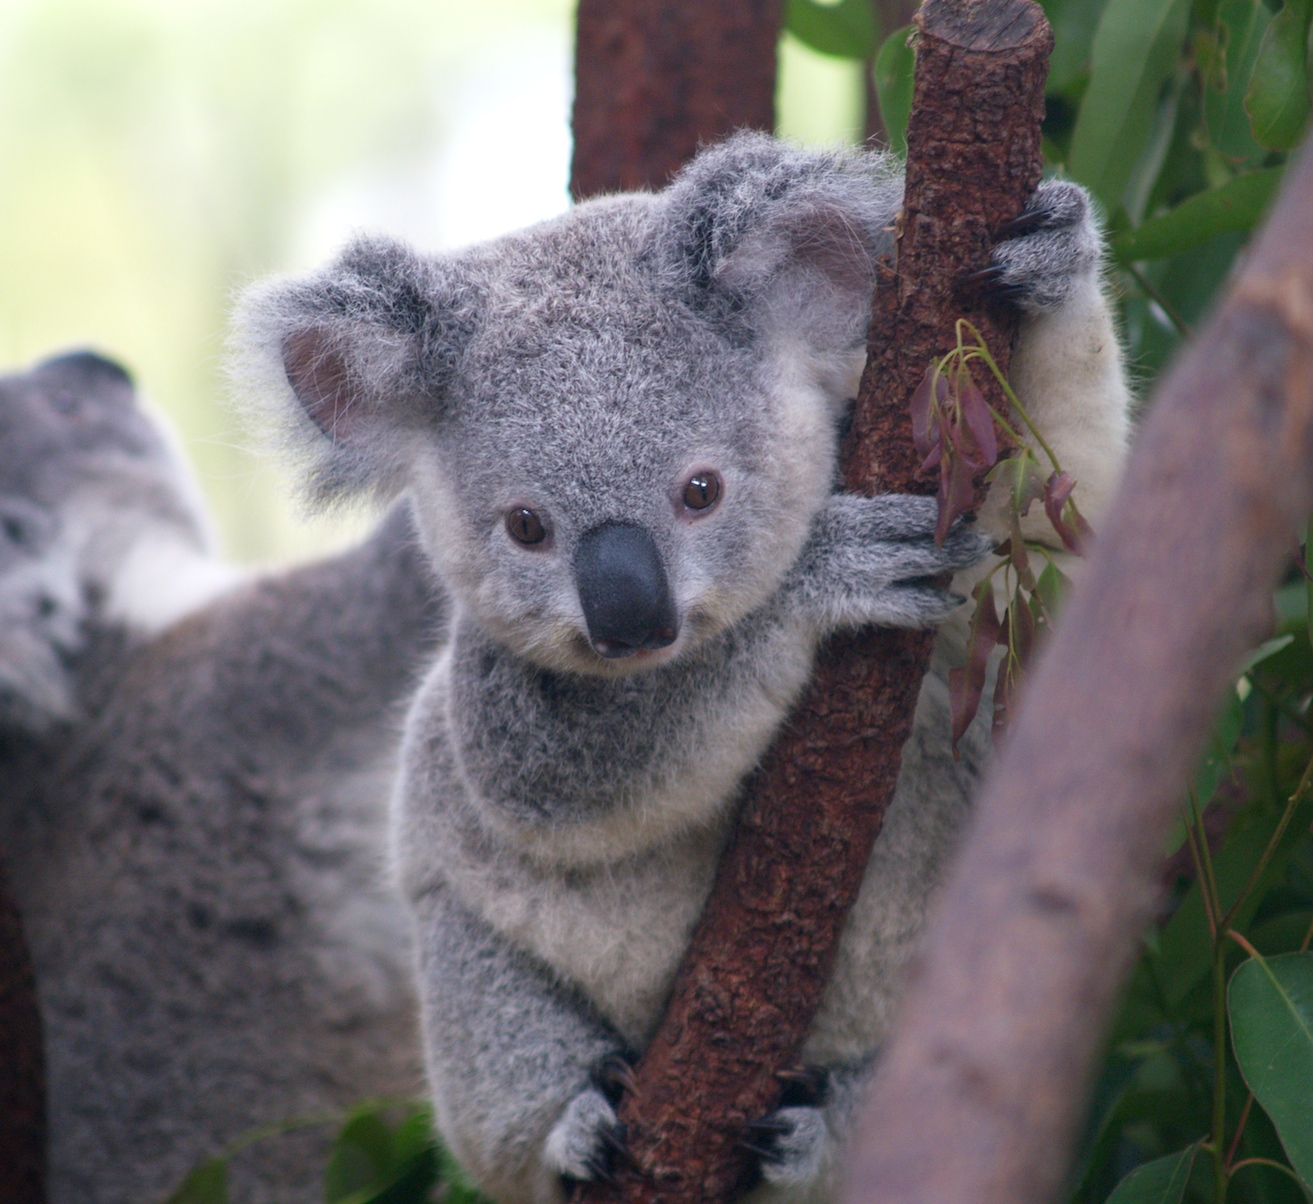 https://i0.wp.com/upload.wikimedia.org/wikipedia/commons/2/21/Cutest_Koala.jpg